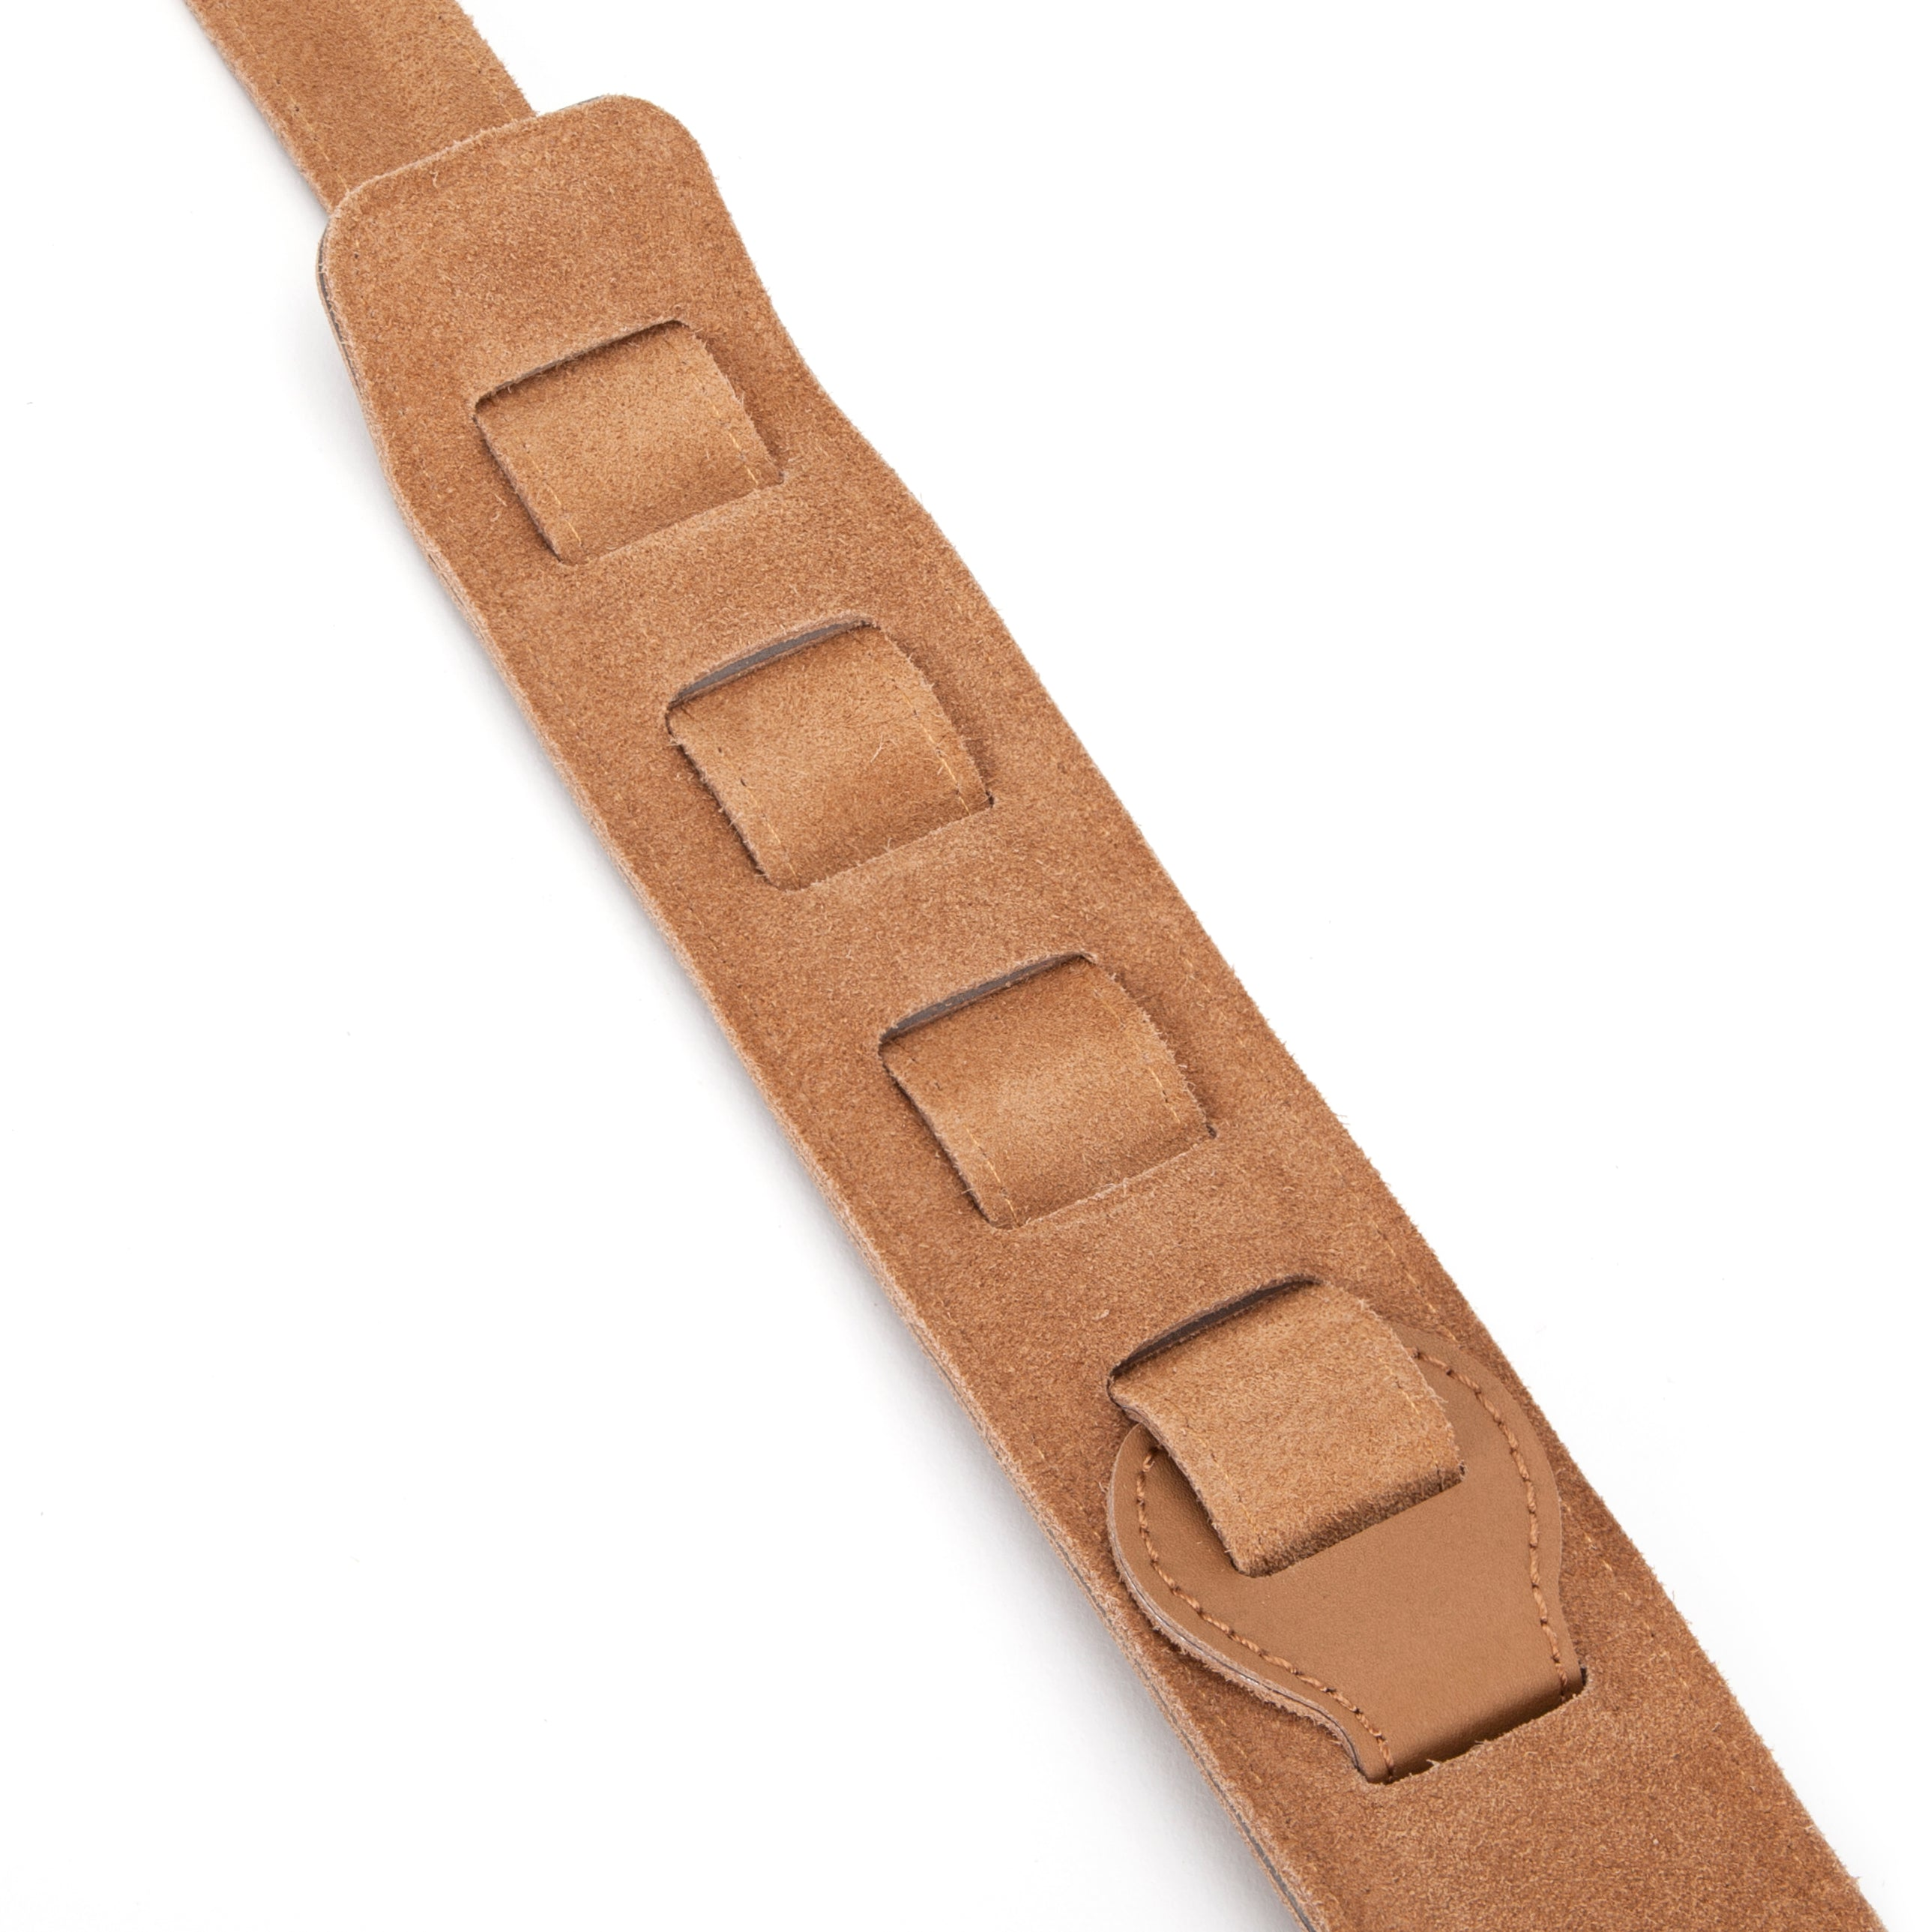 Dat Strap Light Brown Leather Guitar Strap